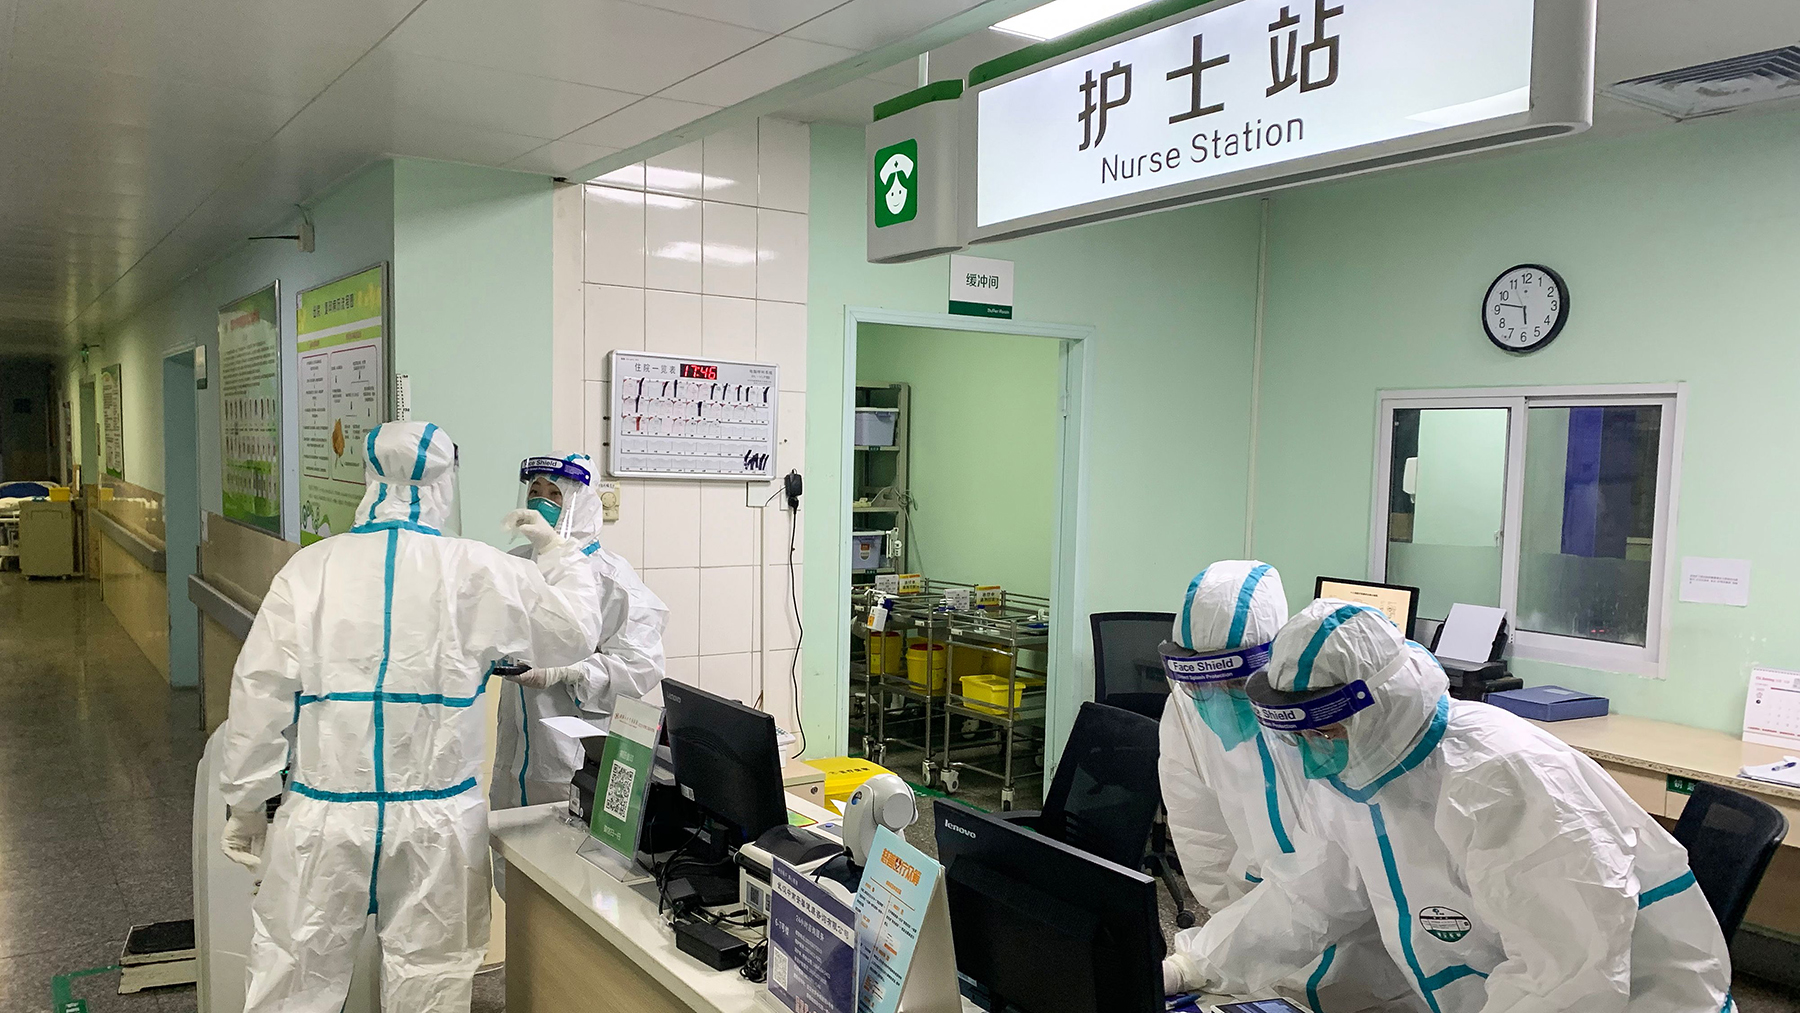 Medical staff members wearing protective suits at the Zhongnan hospital in Wuhan in China's central Hubei province on Jan. 22, 2020. (Photo by STR/AFP via Getty Images)